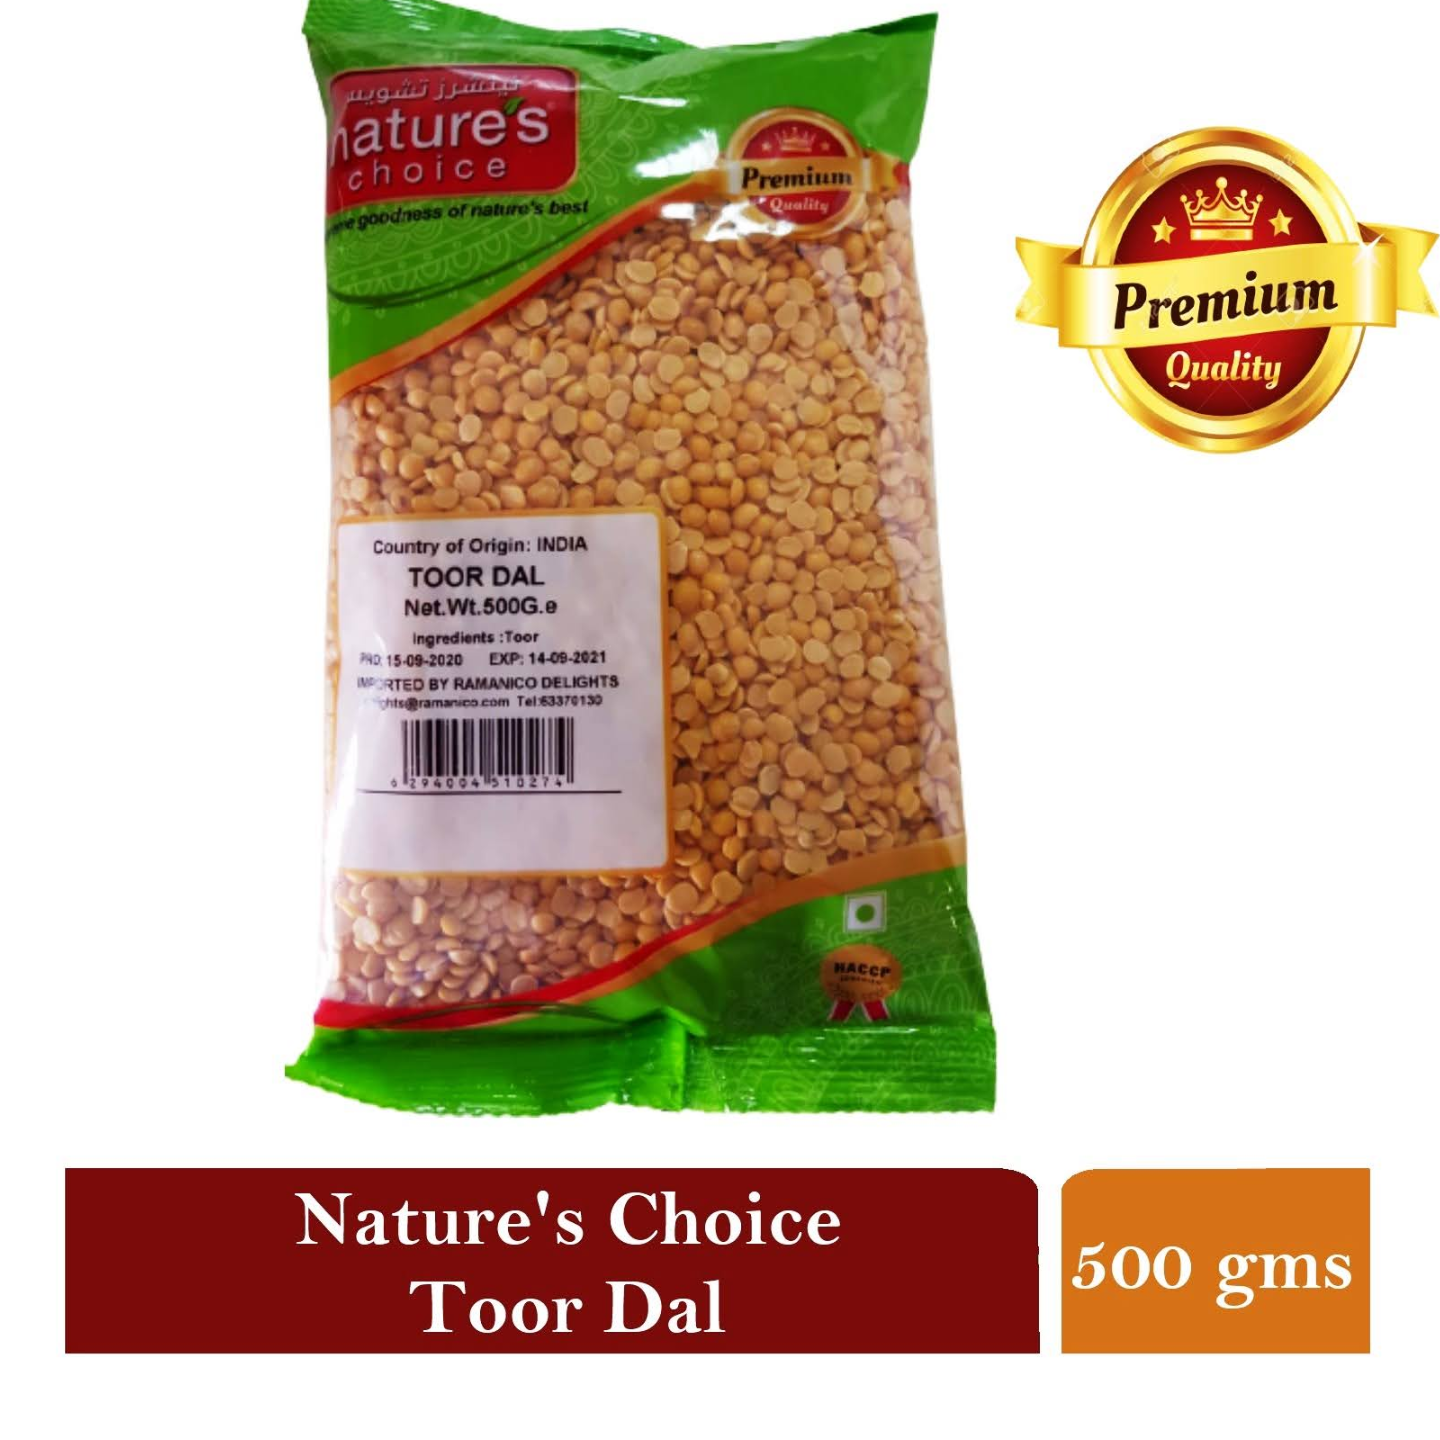 NATURE'S CHOICE PREMIUM QUALITY TOOR DAL 500G